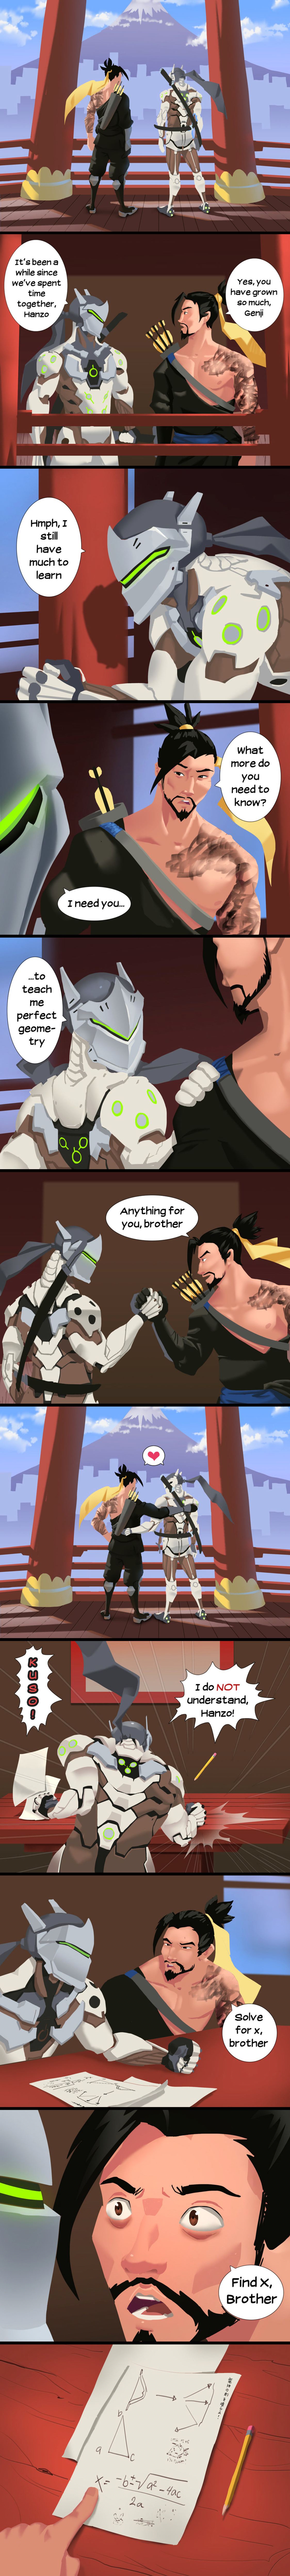 OVERWATCH Fan Comic - Perfect Geometry (ft. Hanzo & Genji). Just a fun and dumb little comic that me and friend came up with in a spur of the moment. Hope you g